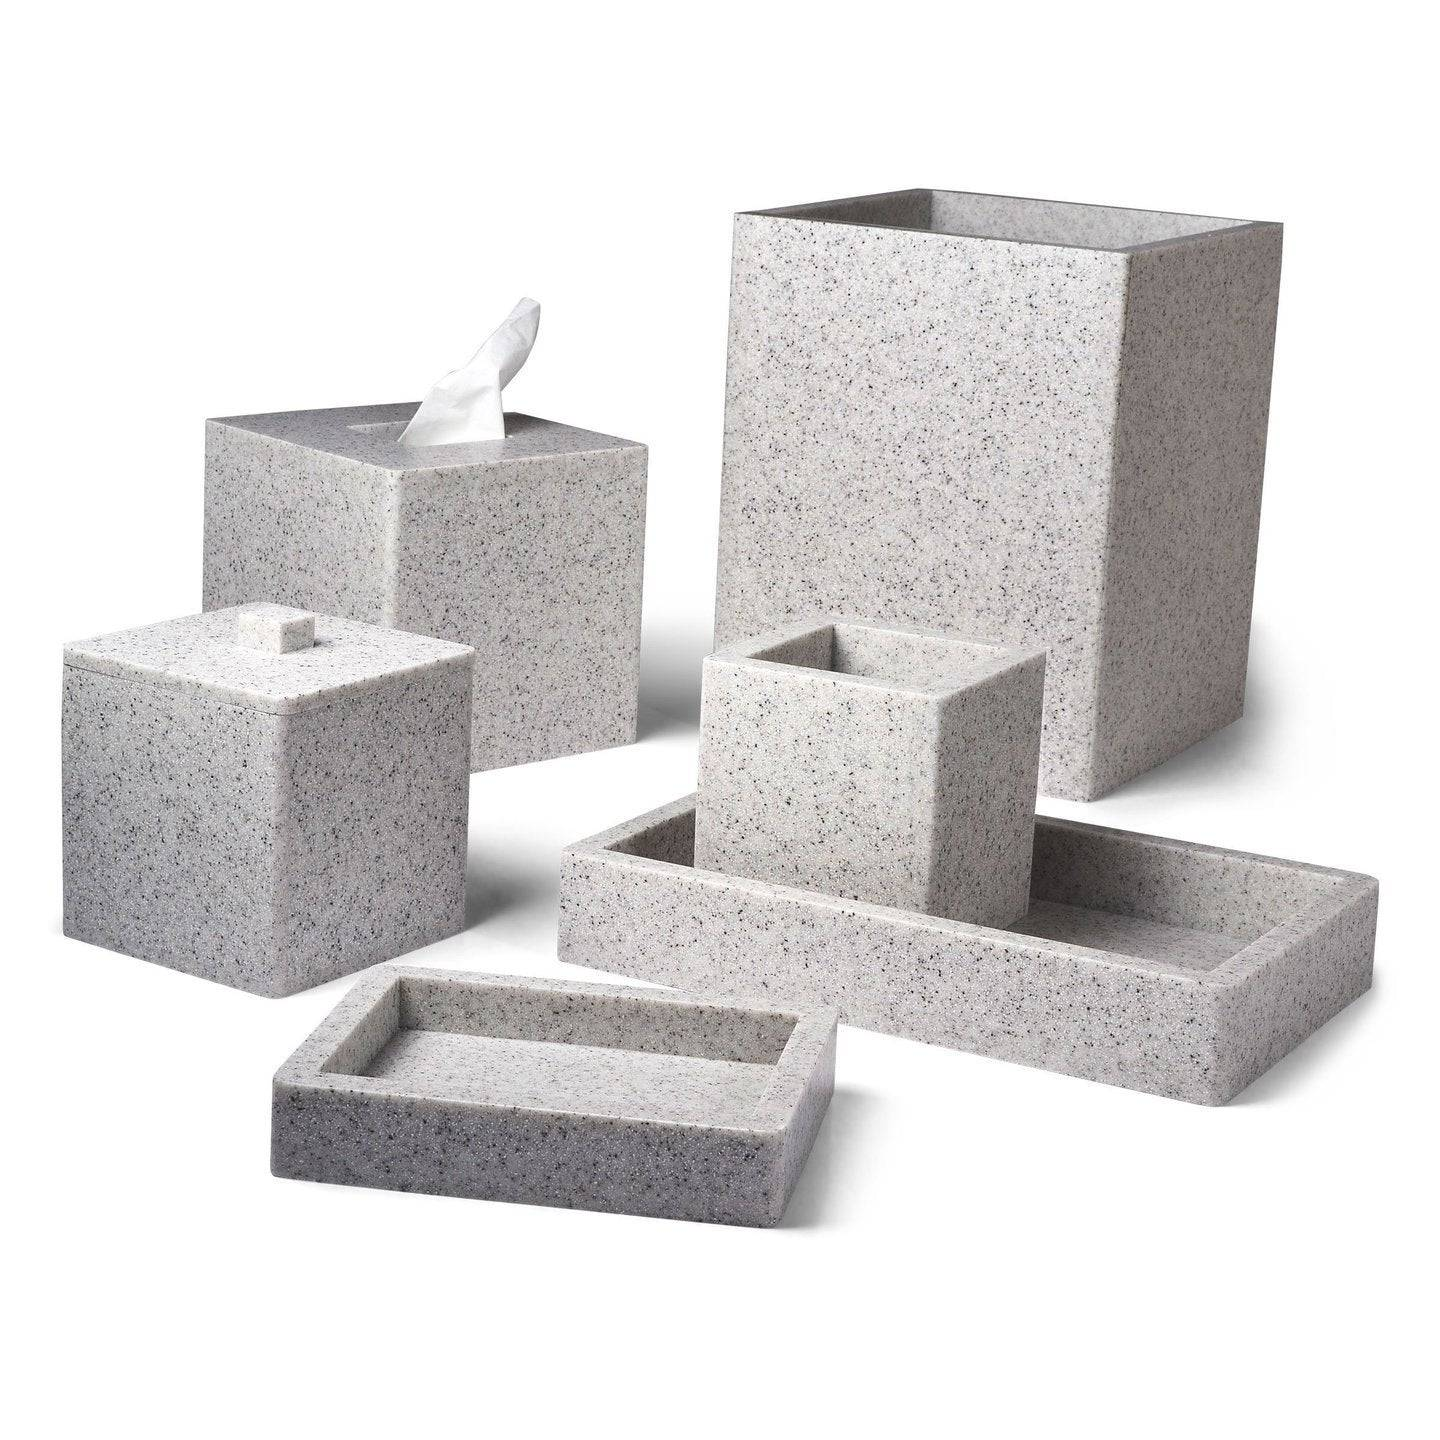 Mike + Ally Contours Stone Bath Accessories by Mike + Ally